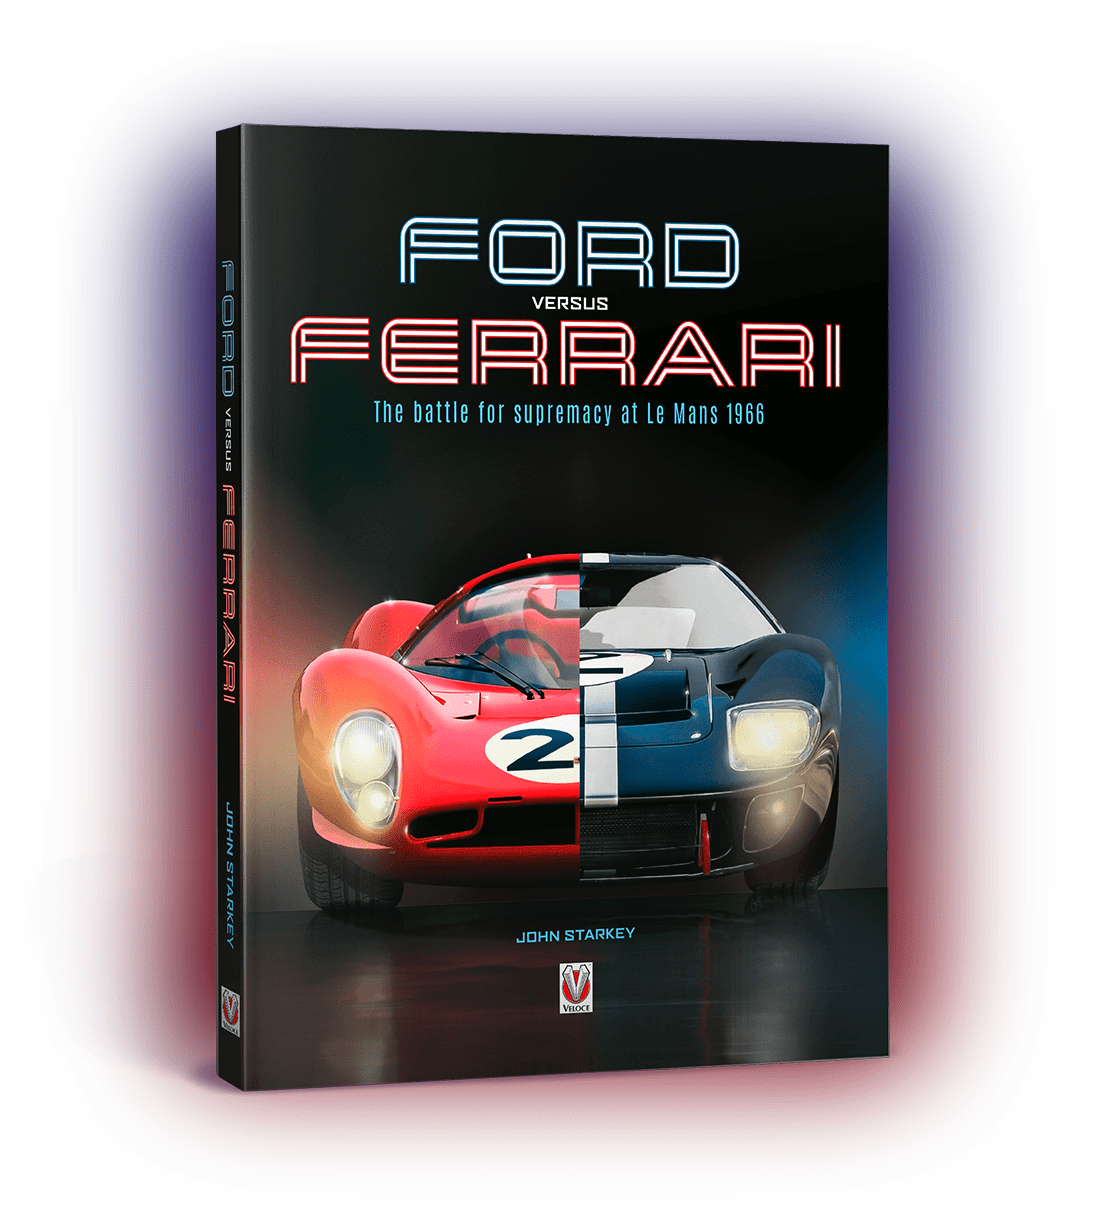 Ford versus Ferrari cover